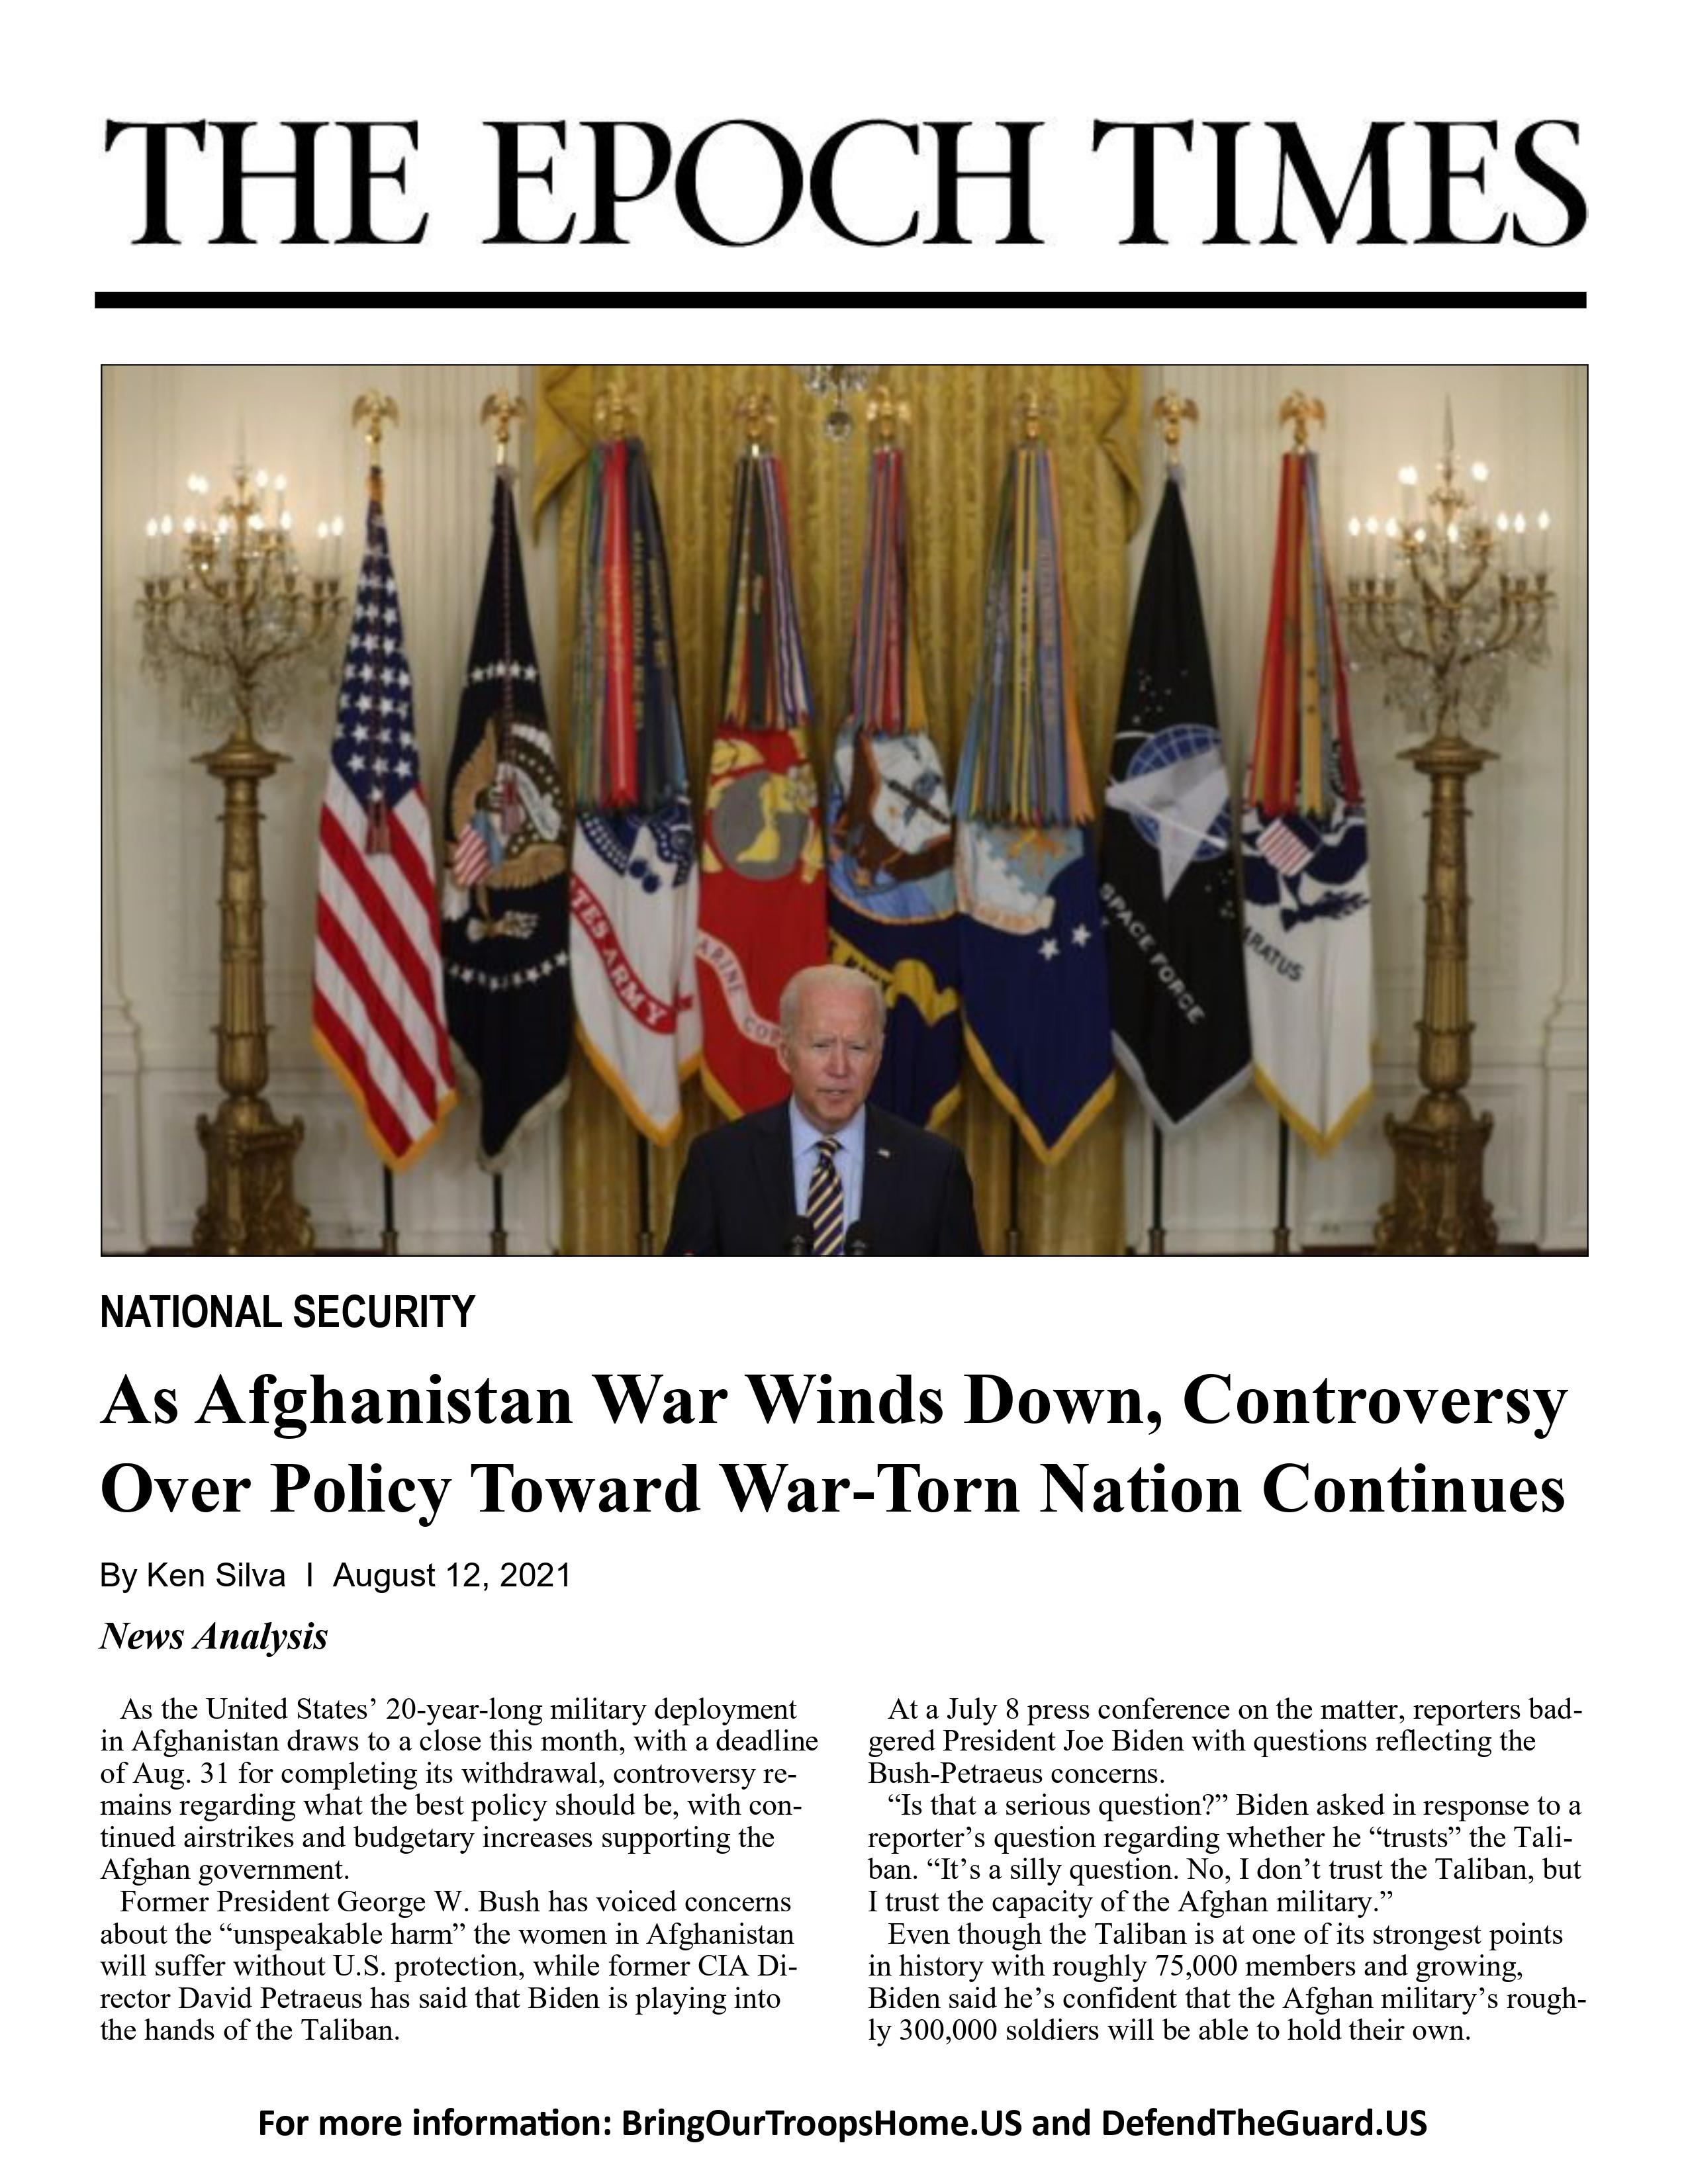 As Afghanistan War Winds Down, Controversy Over Policy Toward War-Torn Nation Continues